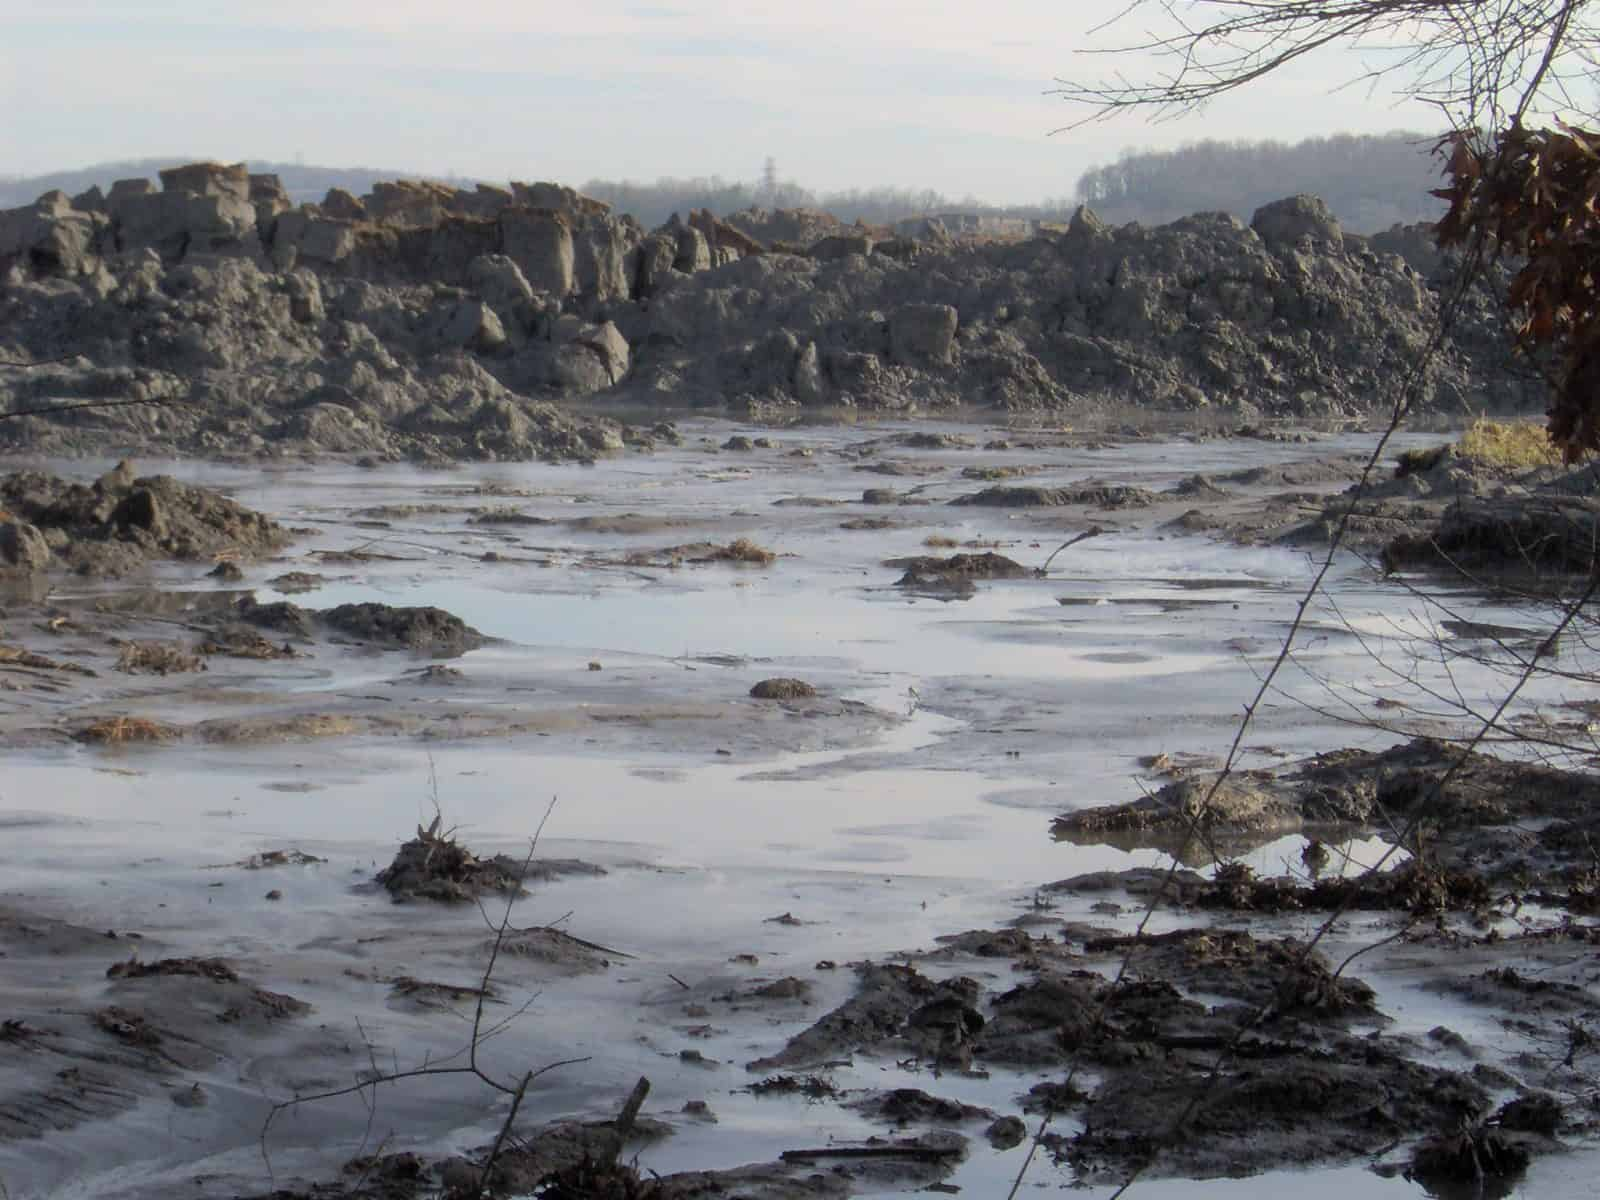 Lasting Impact of the Kingston Fossil Plant Coal Ash Spill